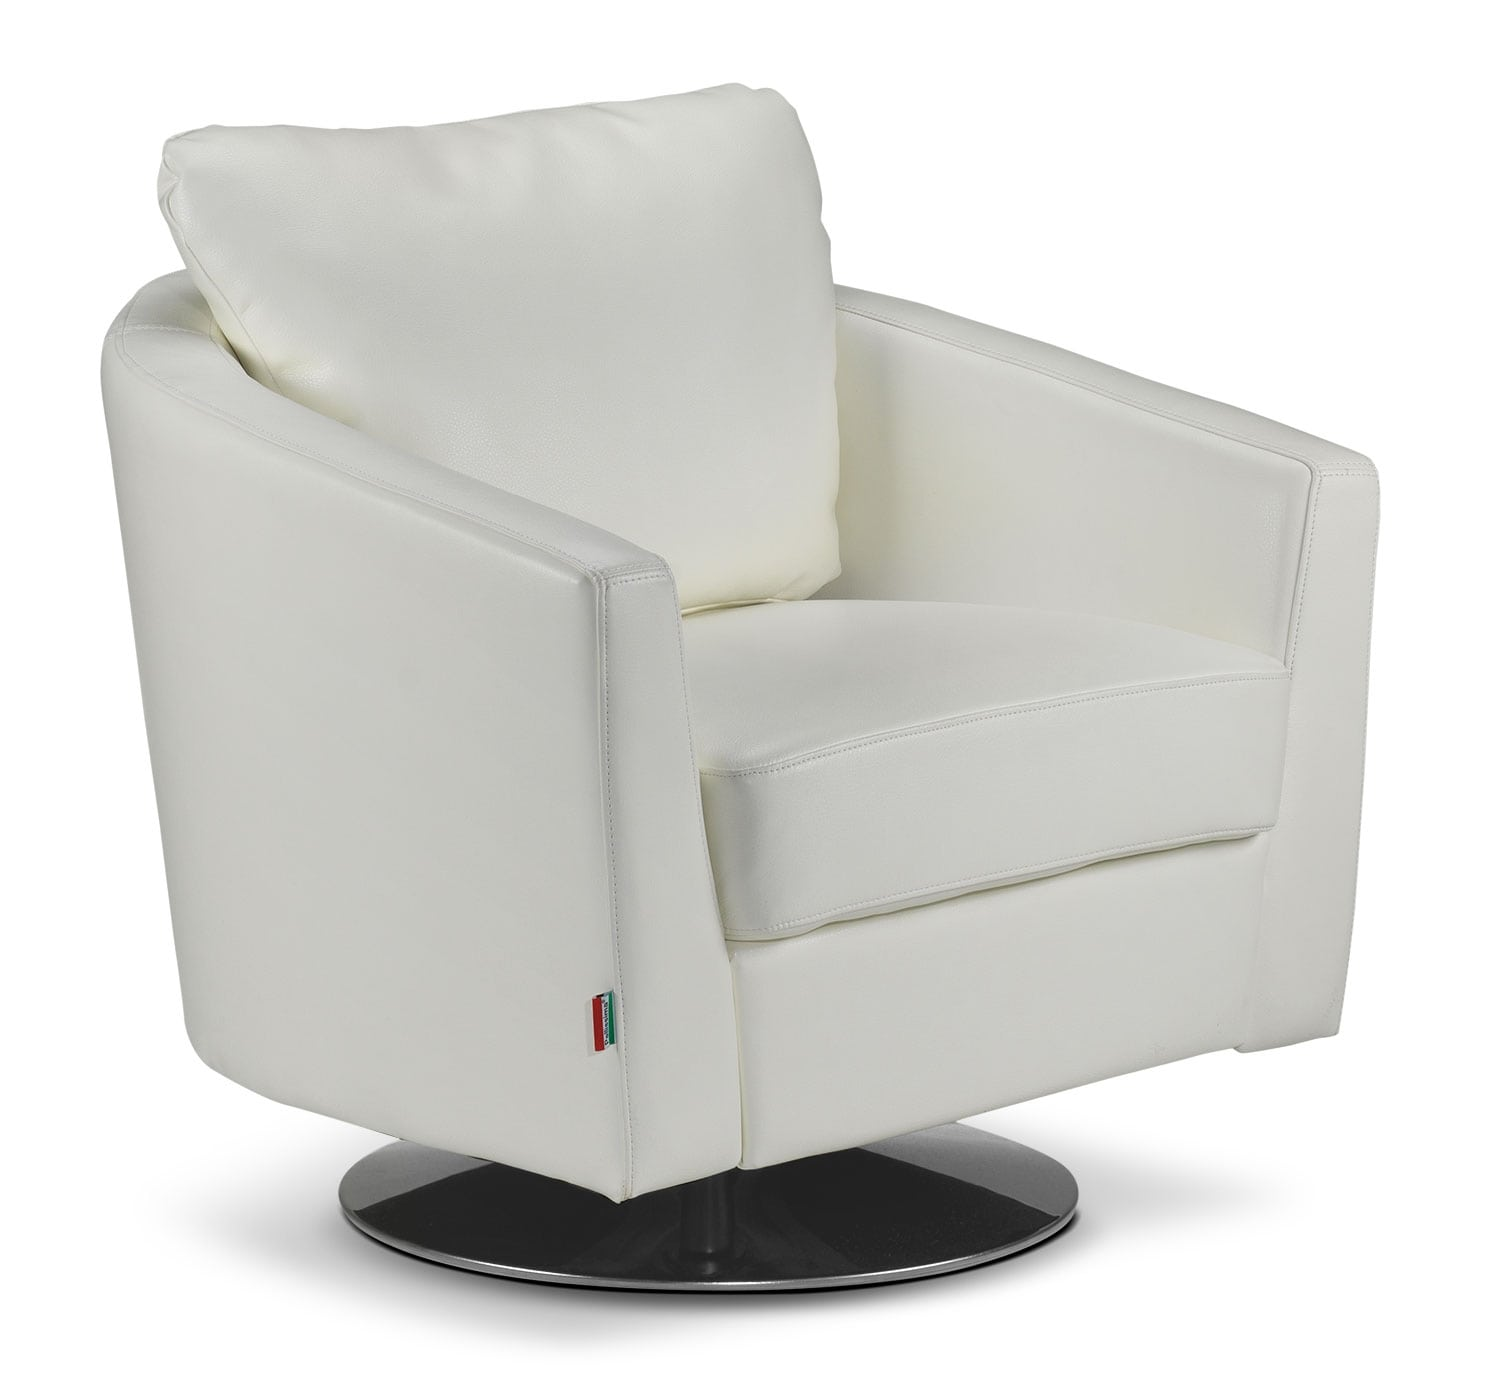 Living Room Furniture - Bel-Air Swivel Chair - White